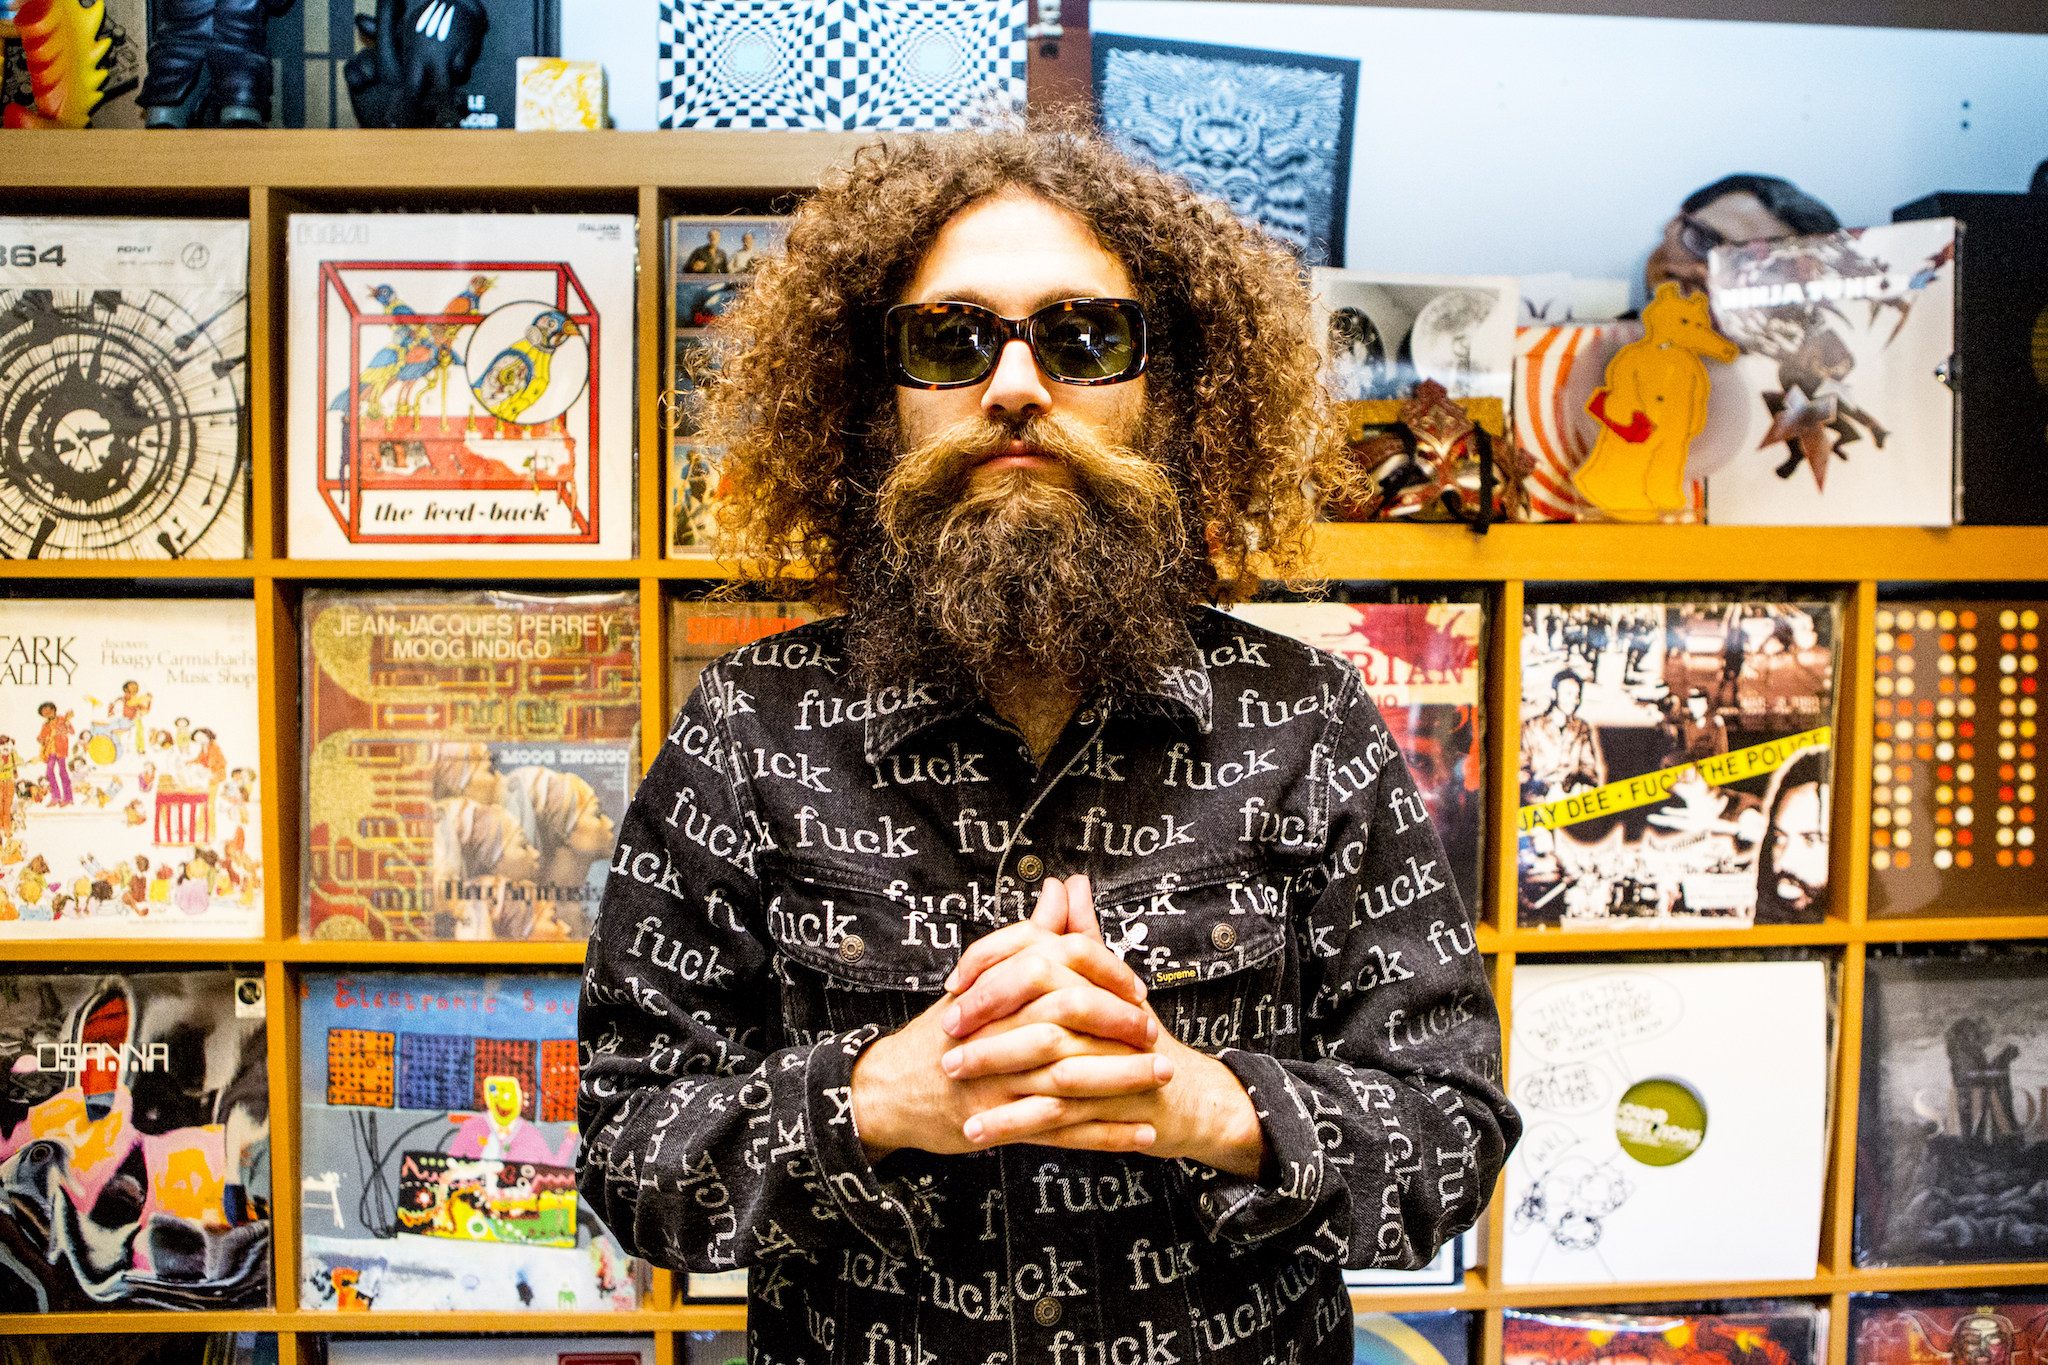 The Gaslamp Killer 1